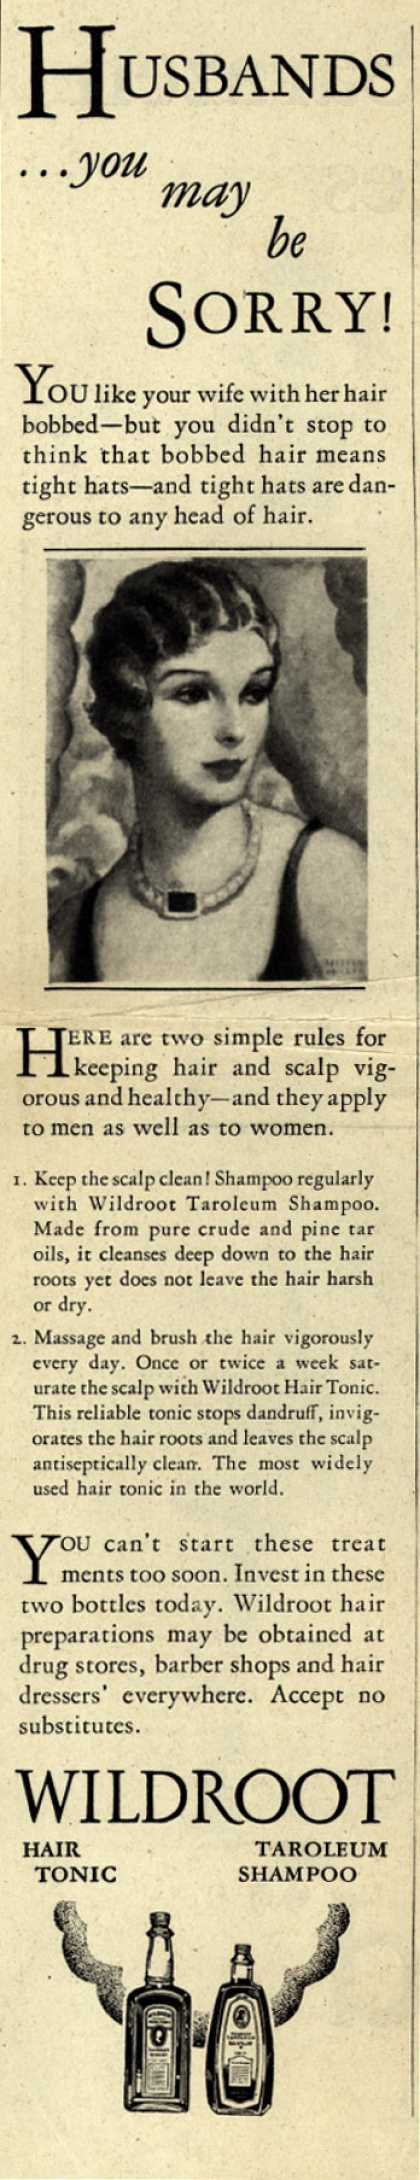 Wildroot Company's Wildroot Hair Preparations – Husbands... you may be Sorry (1928)